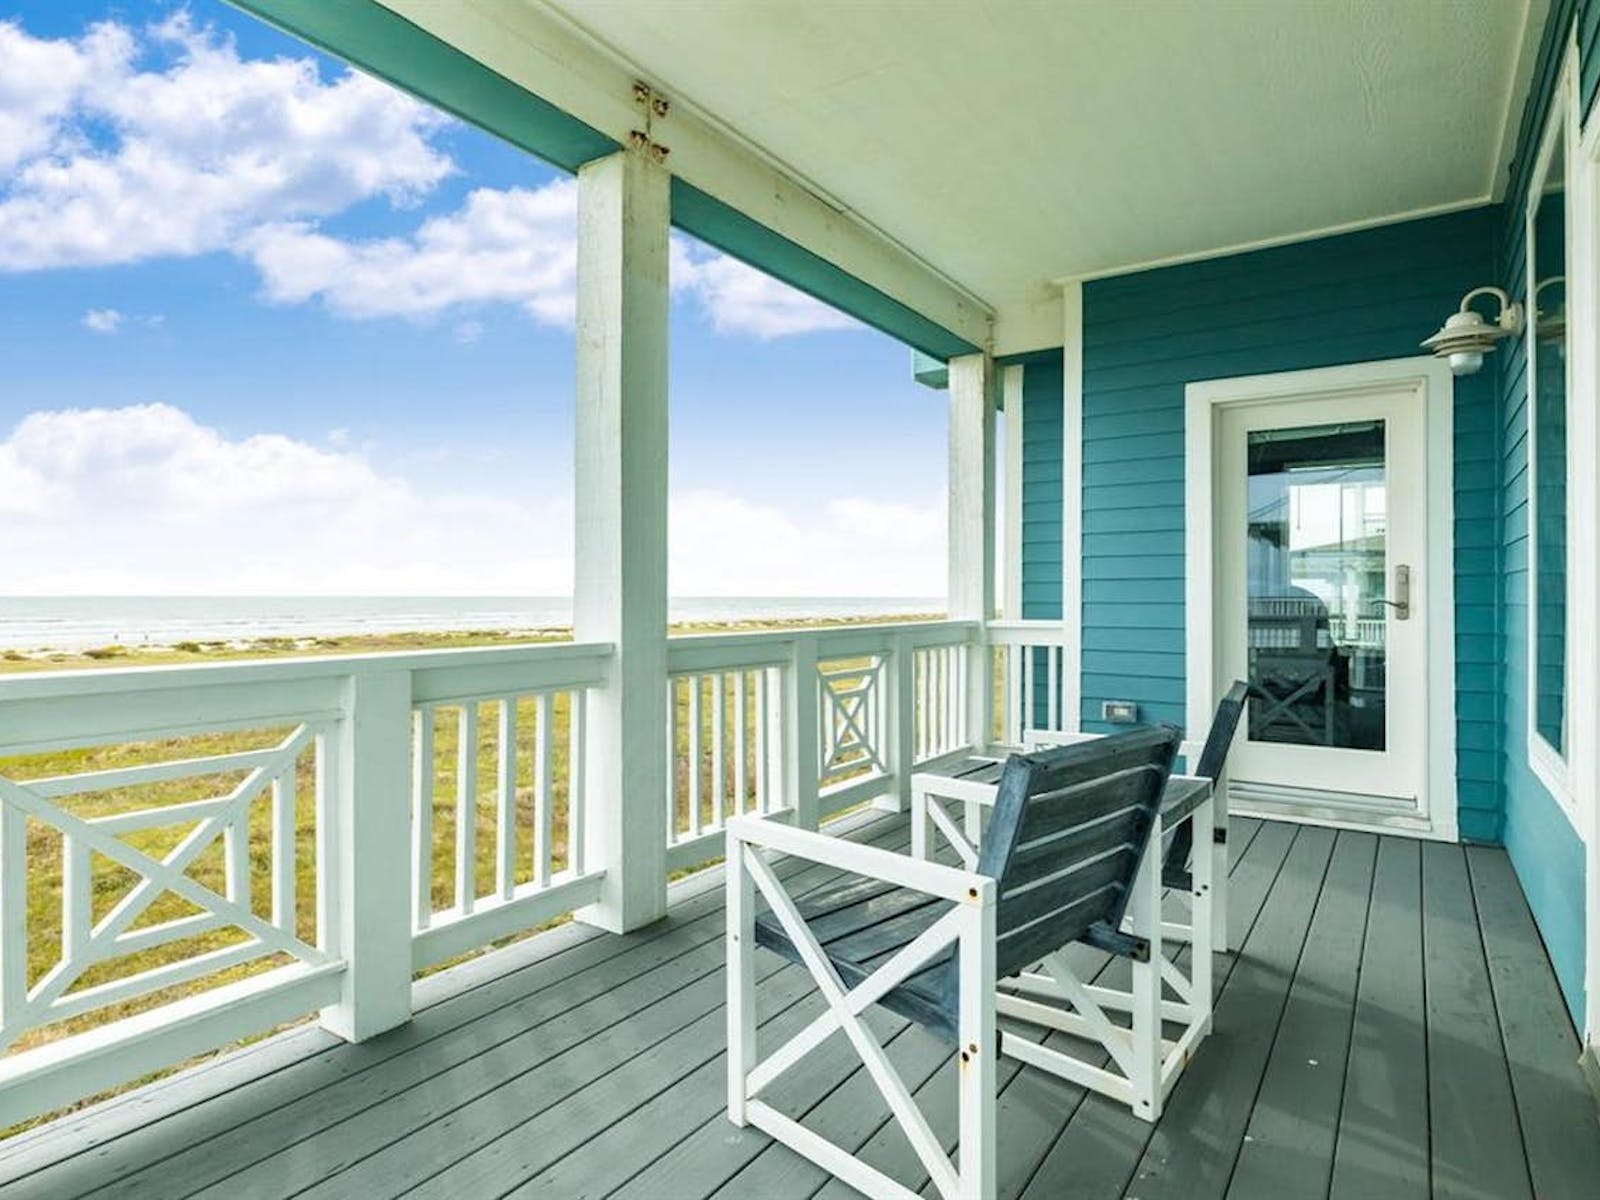 Deck of teal beach house rental in Galveston, TX